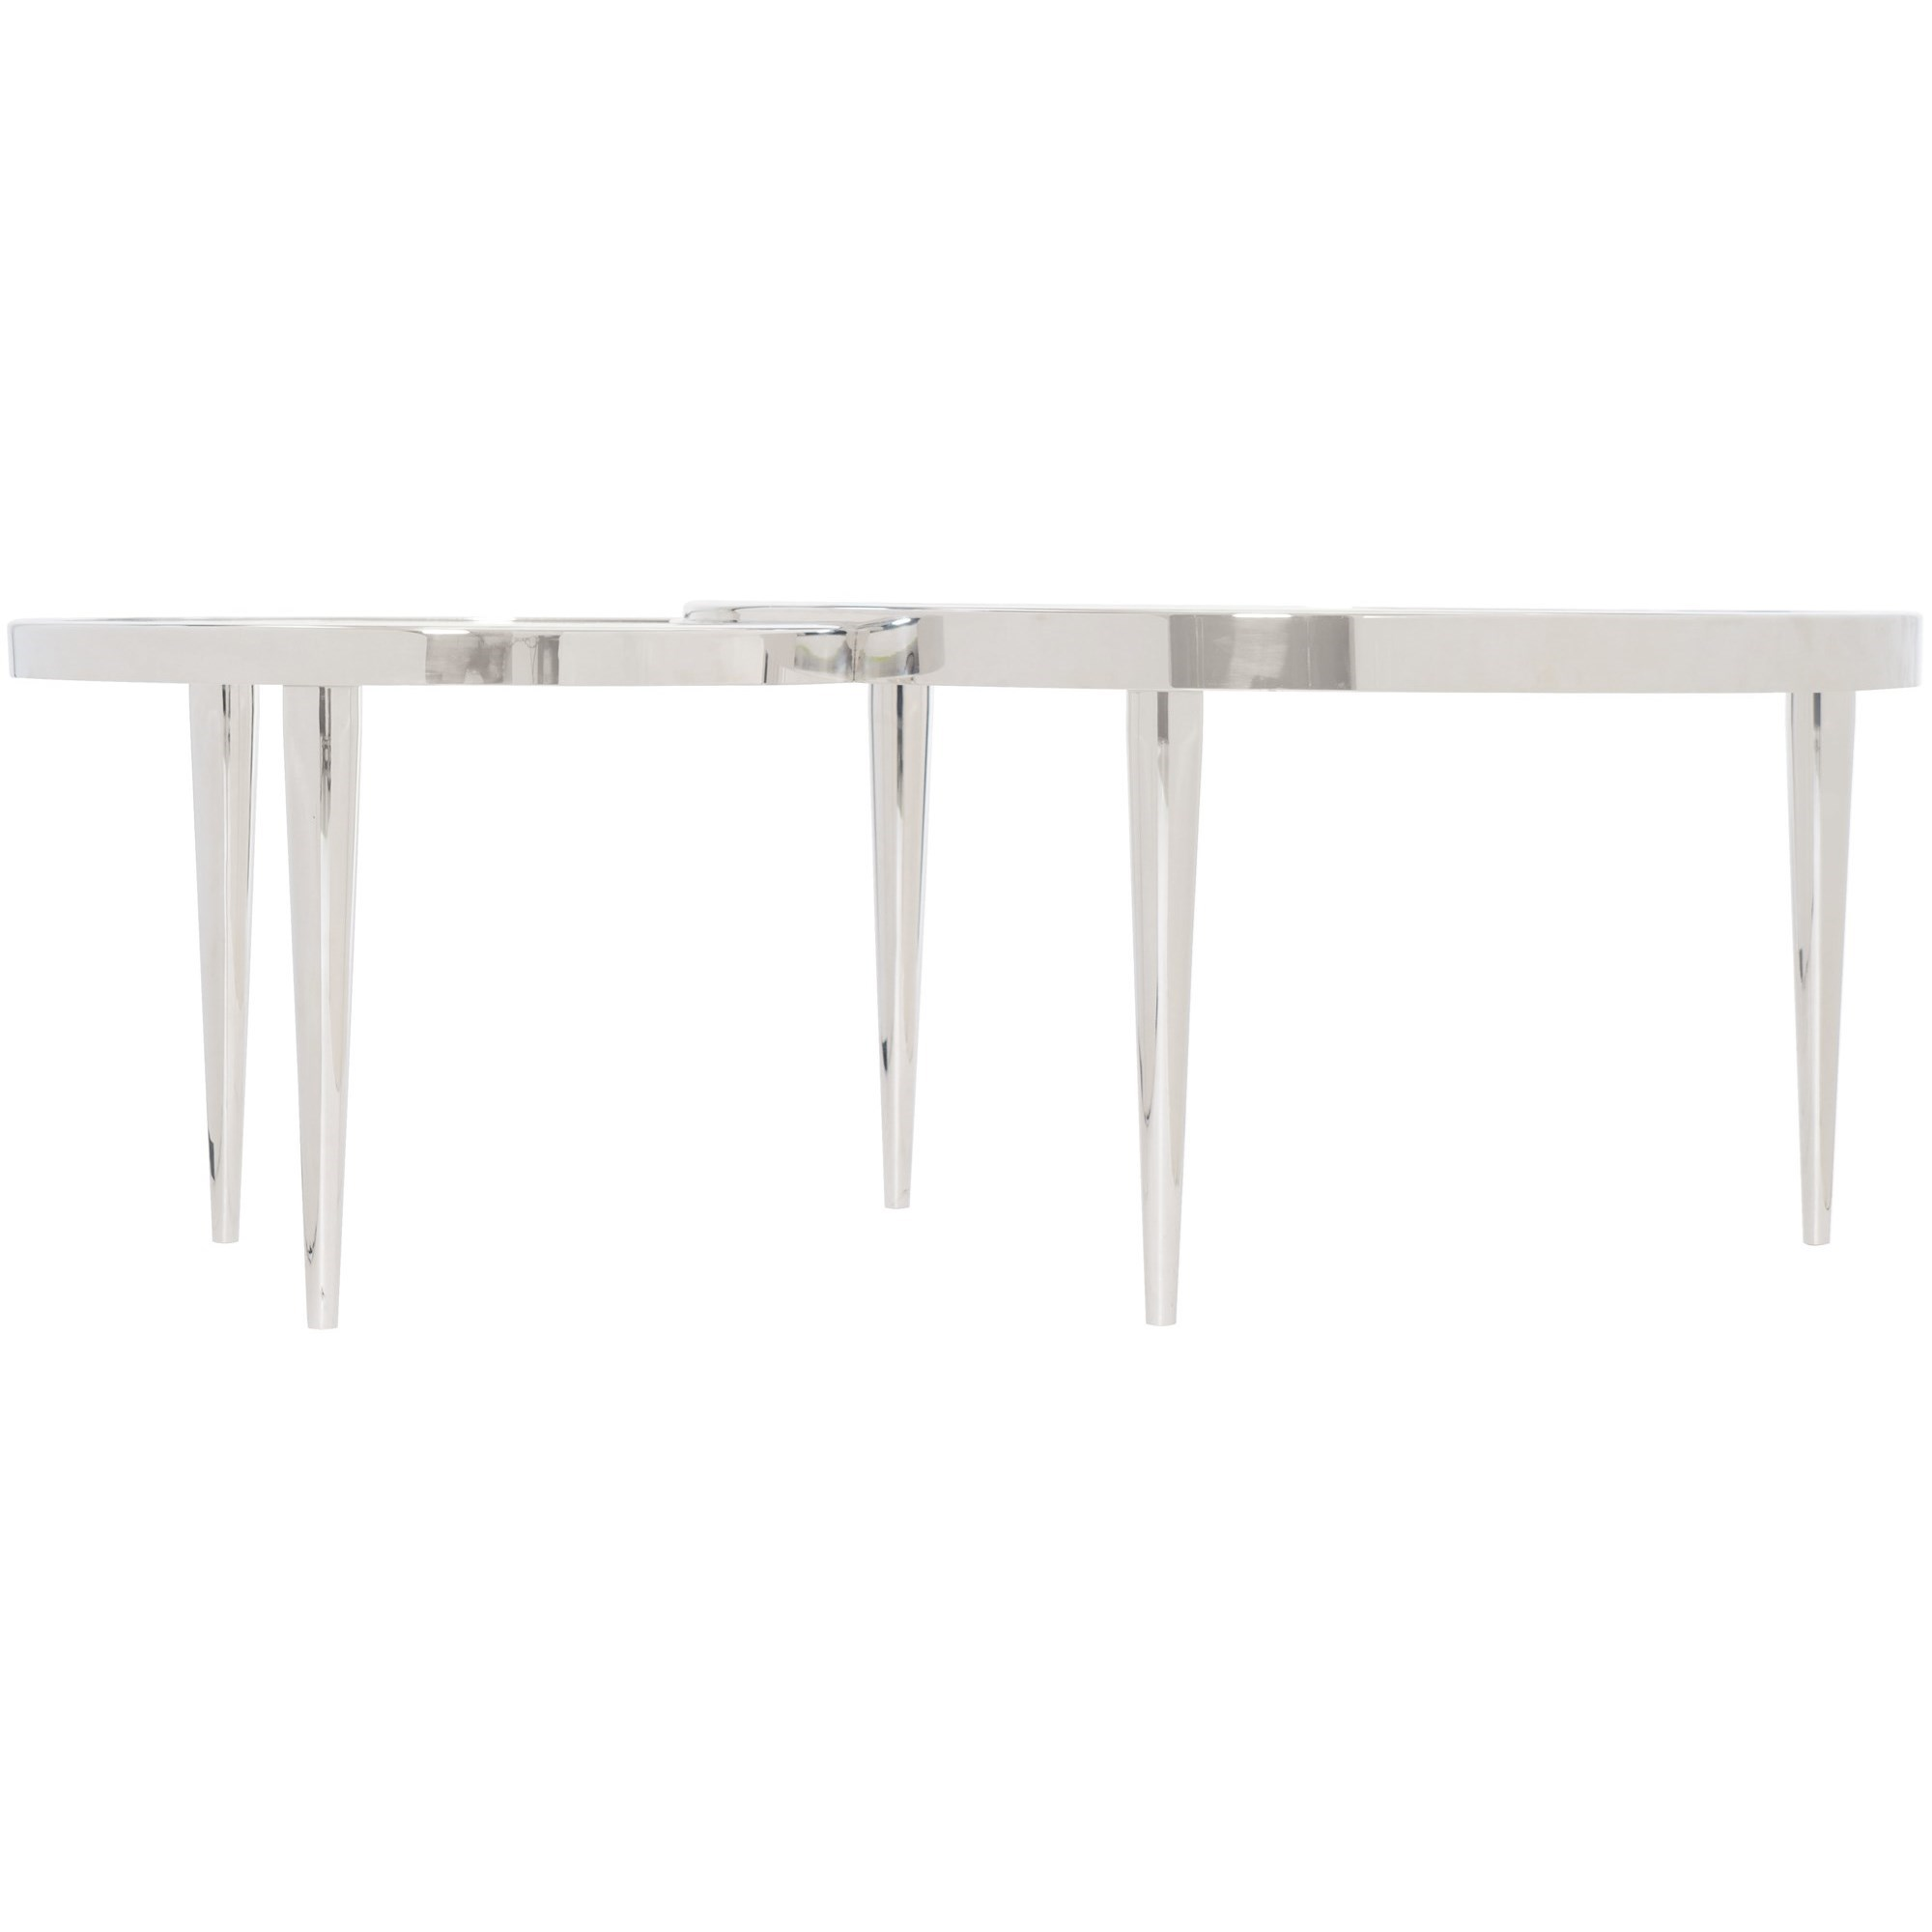 Interiors - Ornette Stainless Steel Cocktail Table at Williams & Kay